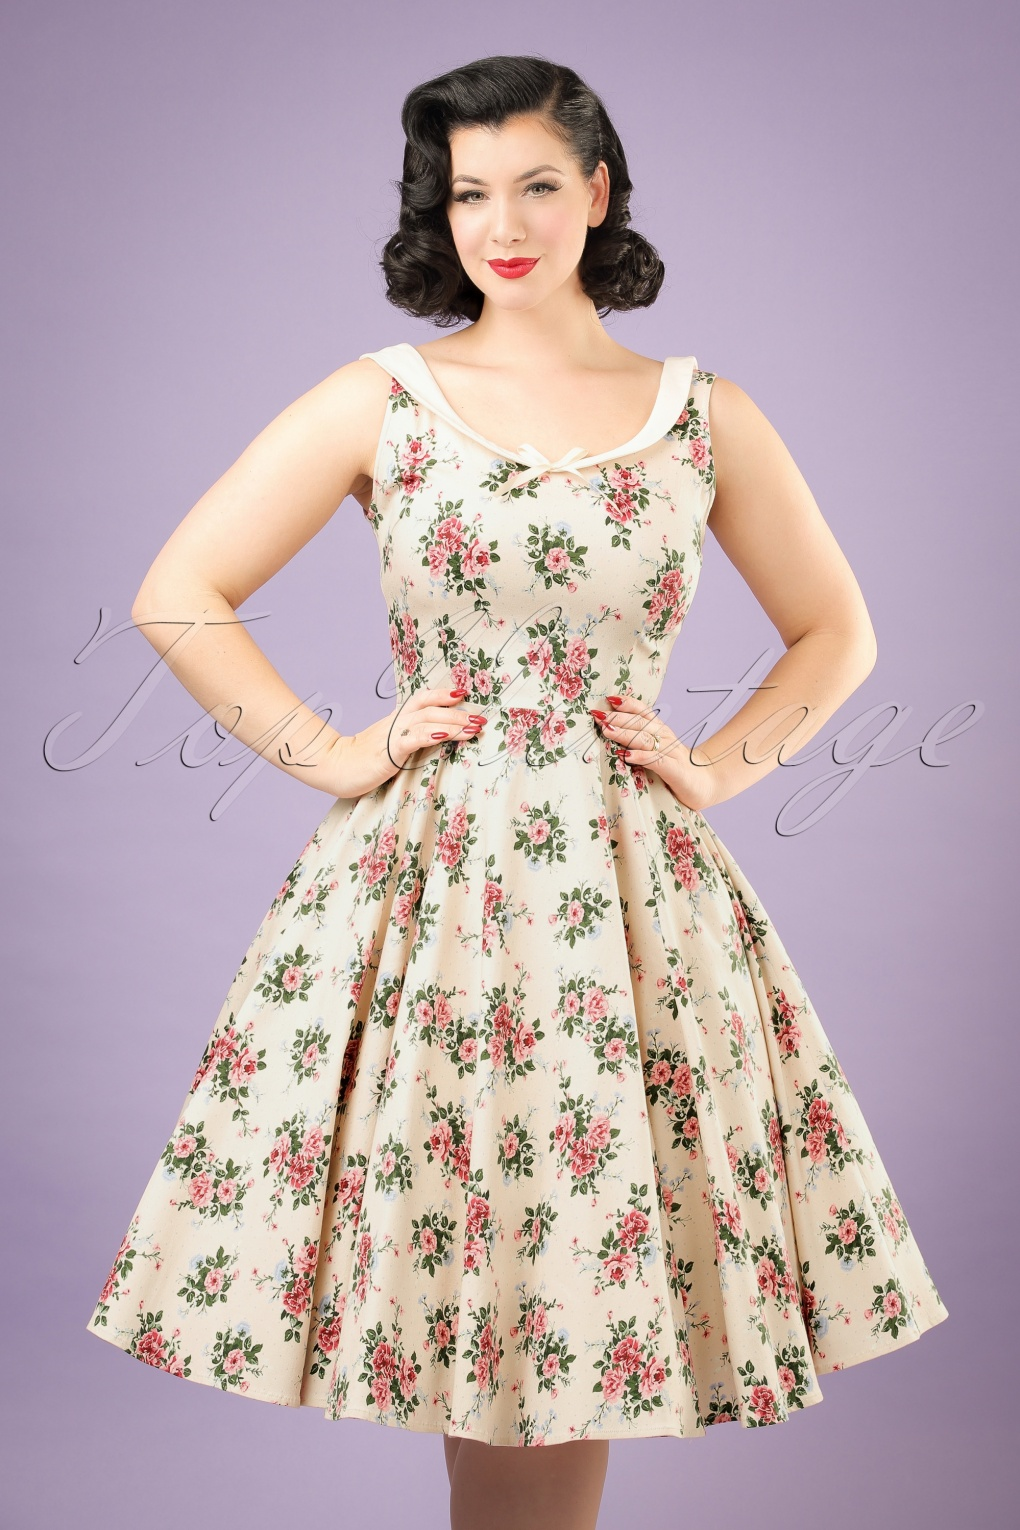 50s Dresses, Pinup Dresses, Swing Dresses 50s Maddison Floral Swing Dress in Beige £72.15 AT vintagedancer.com